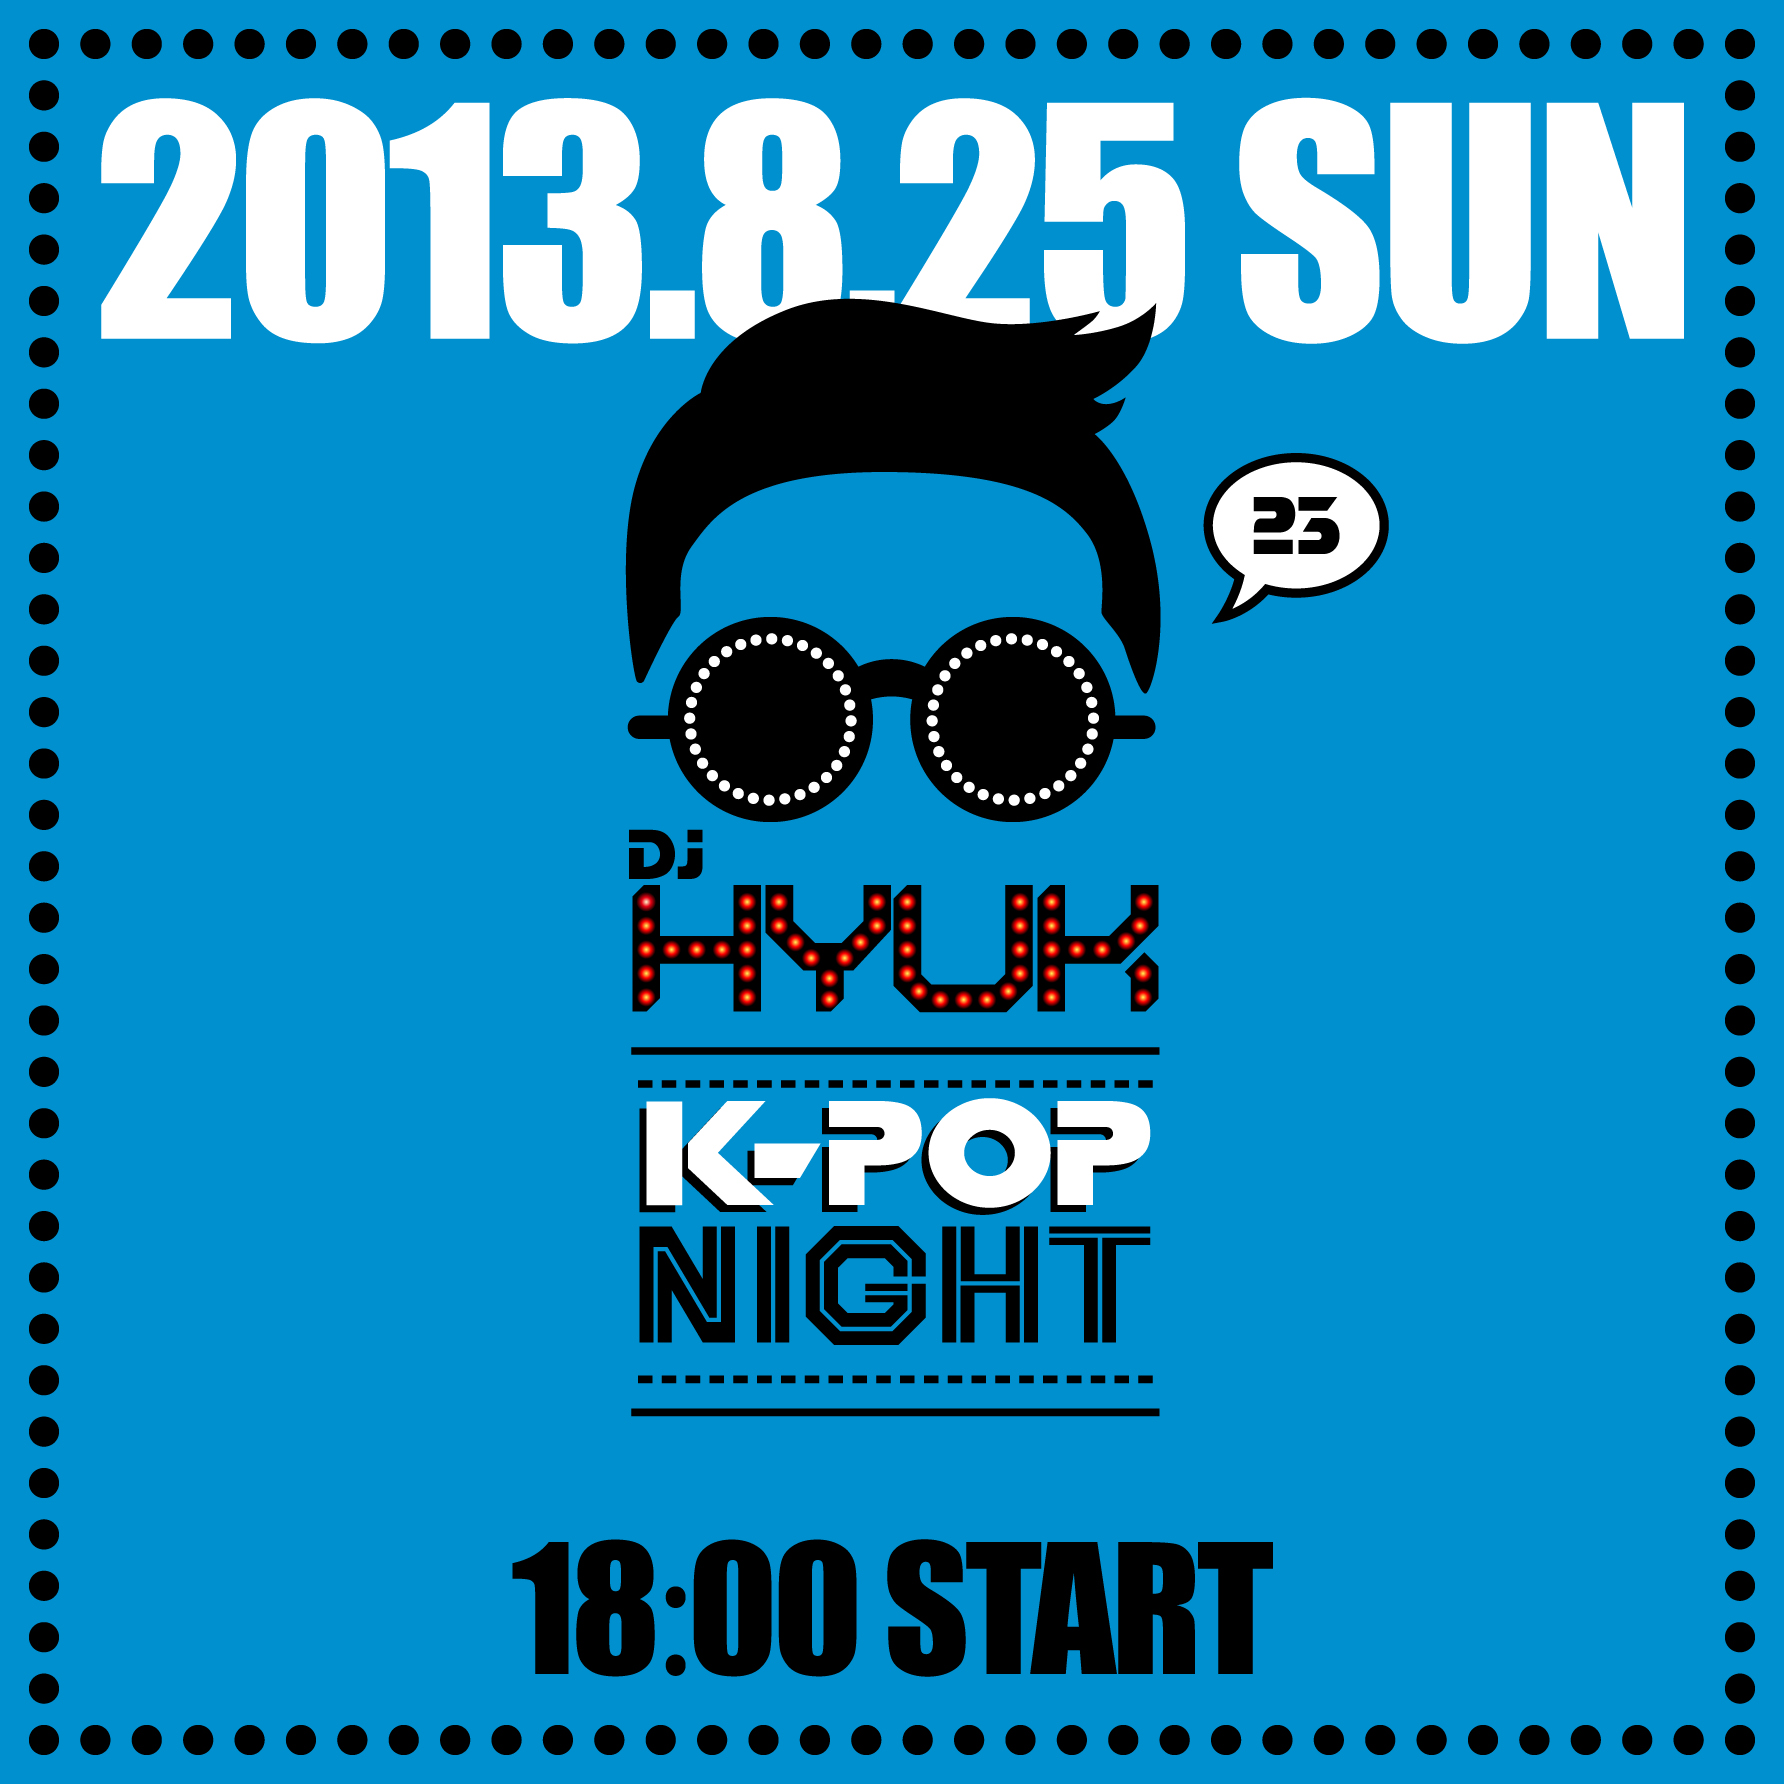 HYUKのK-POP NIGHT vol.23  - 1784x1784 709.3kb